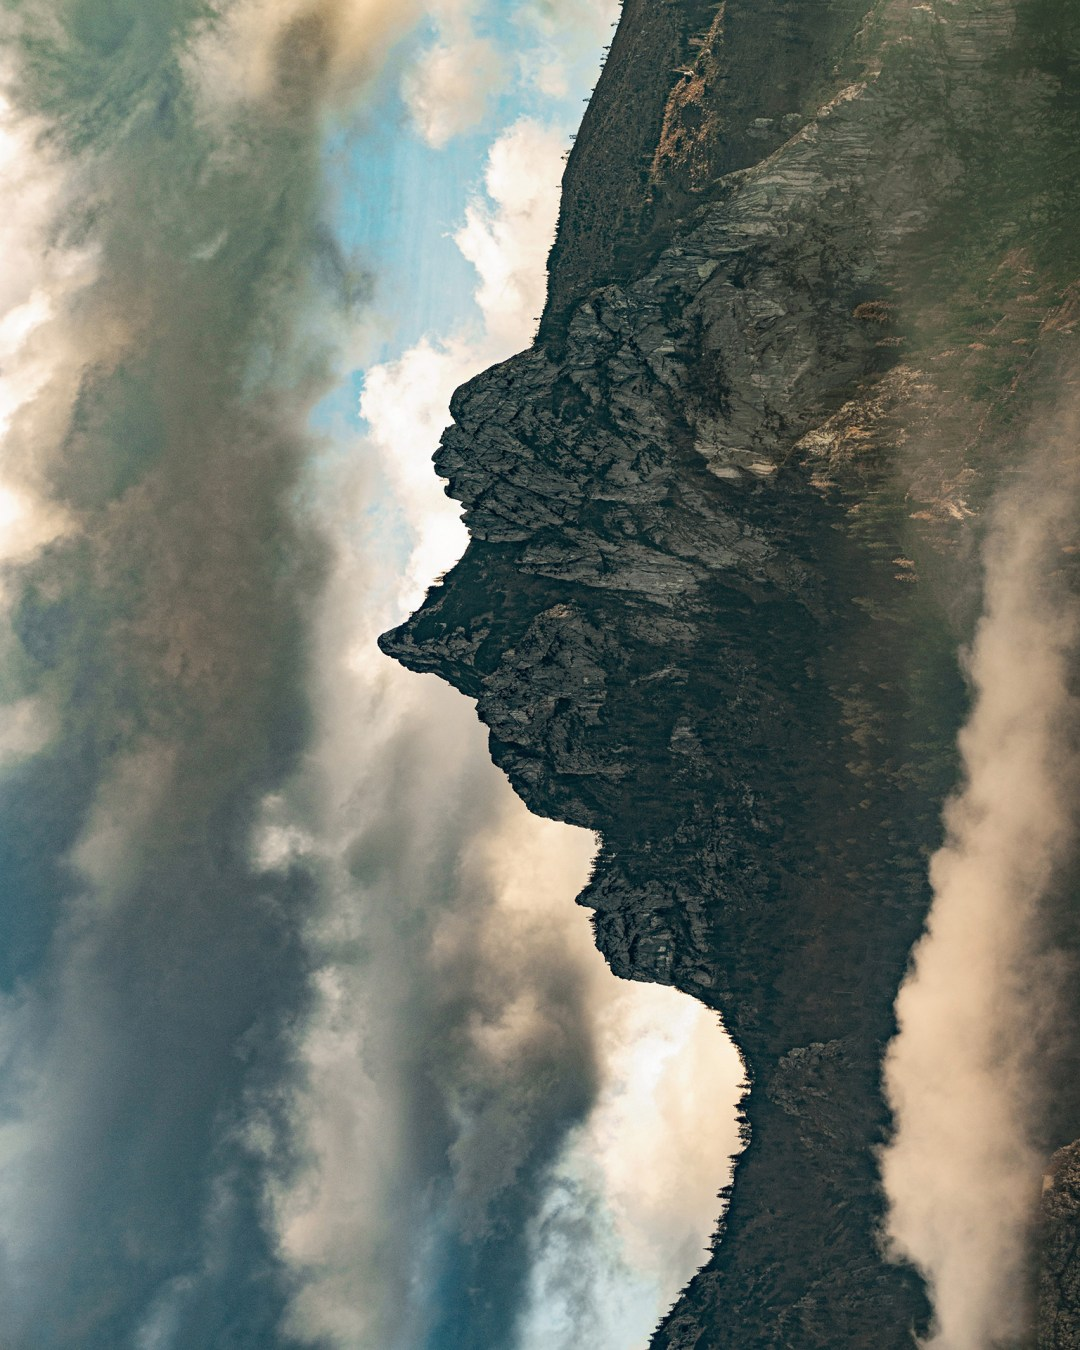 Illusory Photographs of Mountain Landscapes Are Flipped 90 Degrees to Reveal Human-Like Profiles